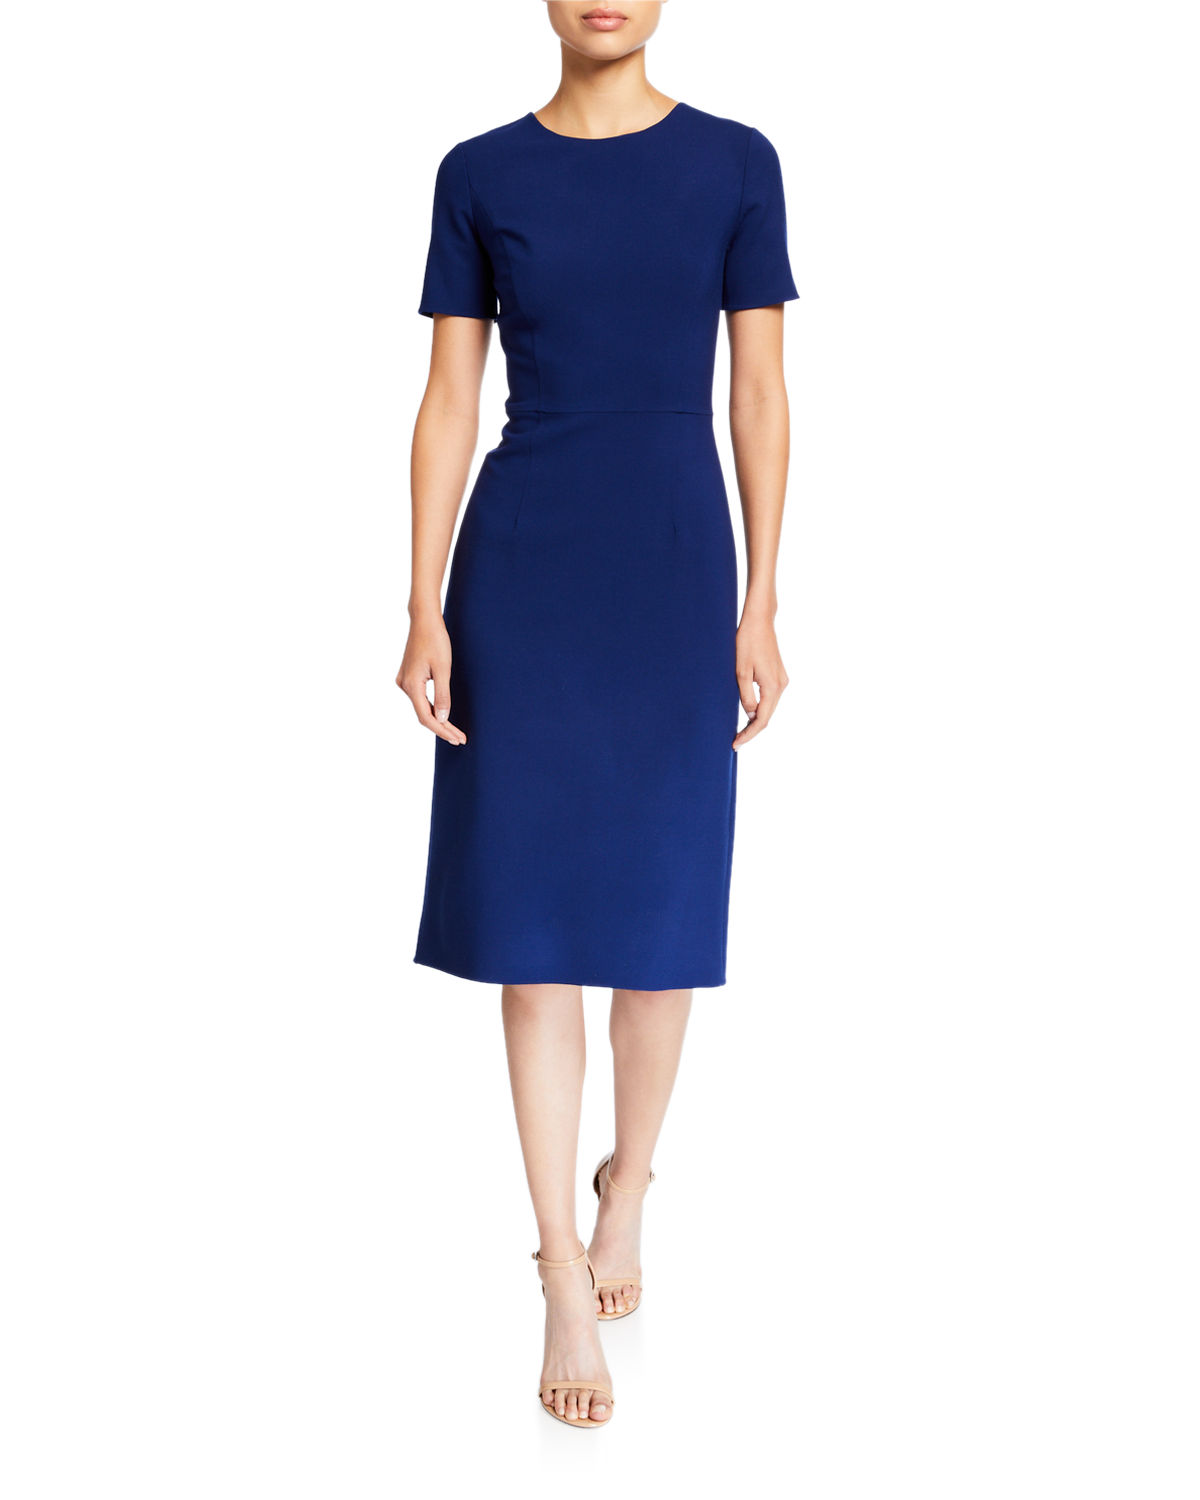 Carolina Herrera Dresses CREWNECK SHEATH COCKTAIL DRESS